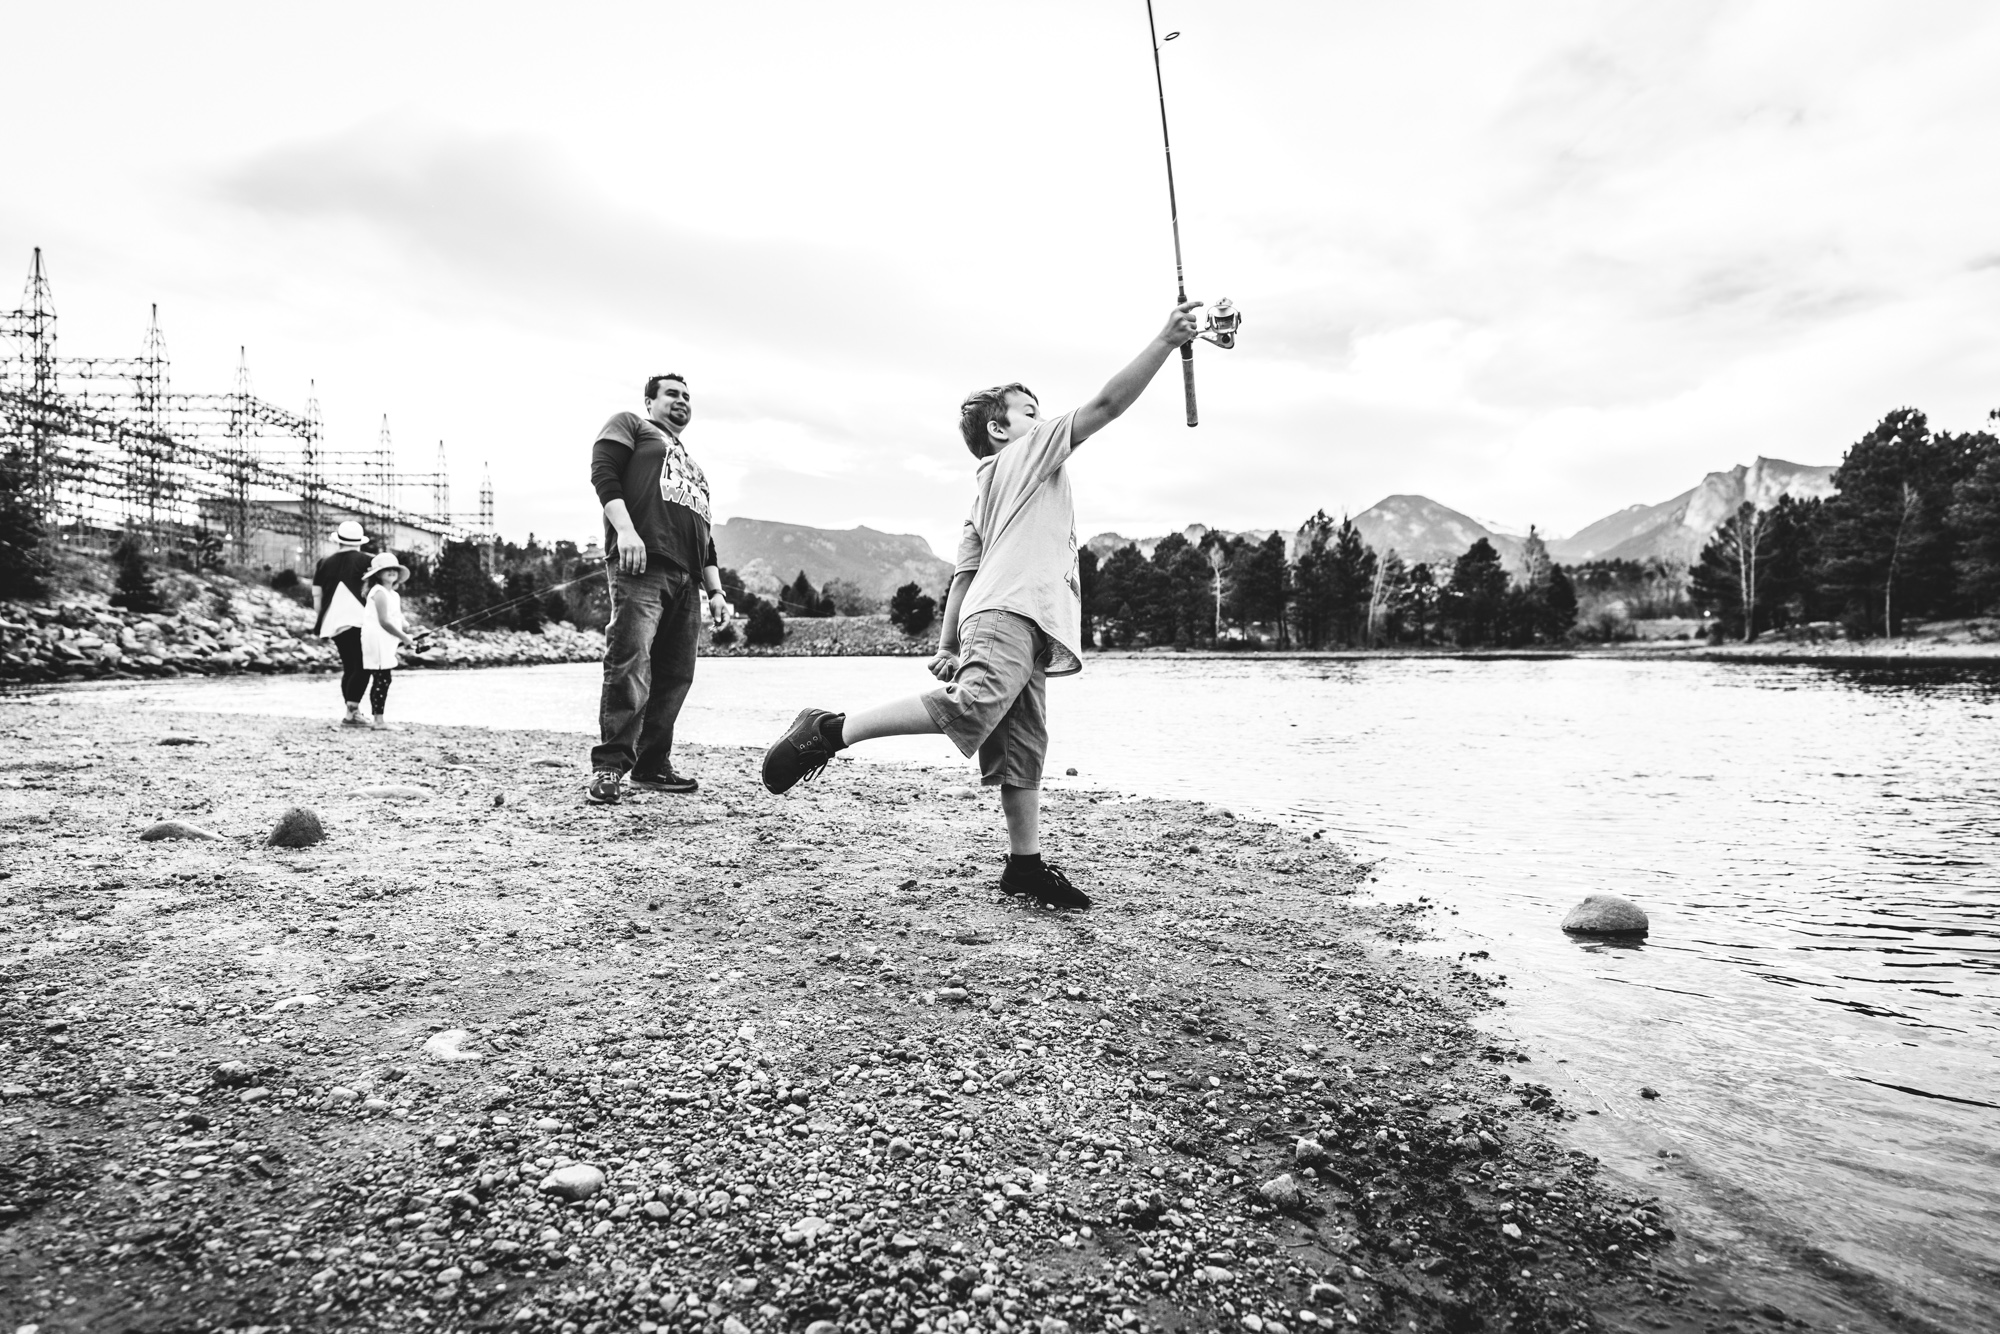 Black and white photo of a little boy at a lake attempting to cast a fishing rod, one leg thrown up behind him from the effort of it, as his father, who is standing next to him, leans back to avoid getting hit. Taken at a lake in Estes park, Colorado.